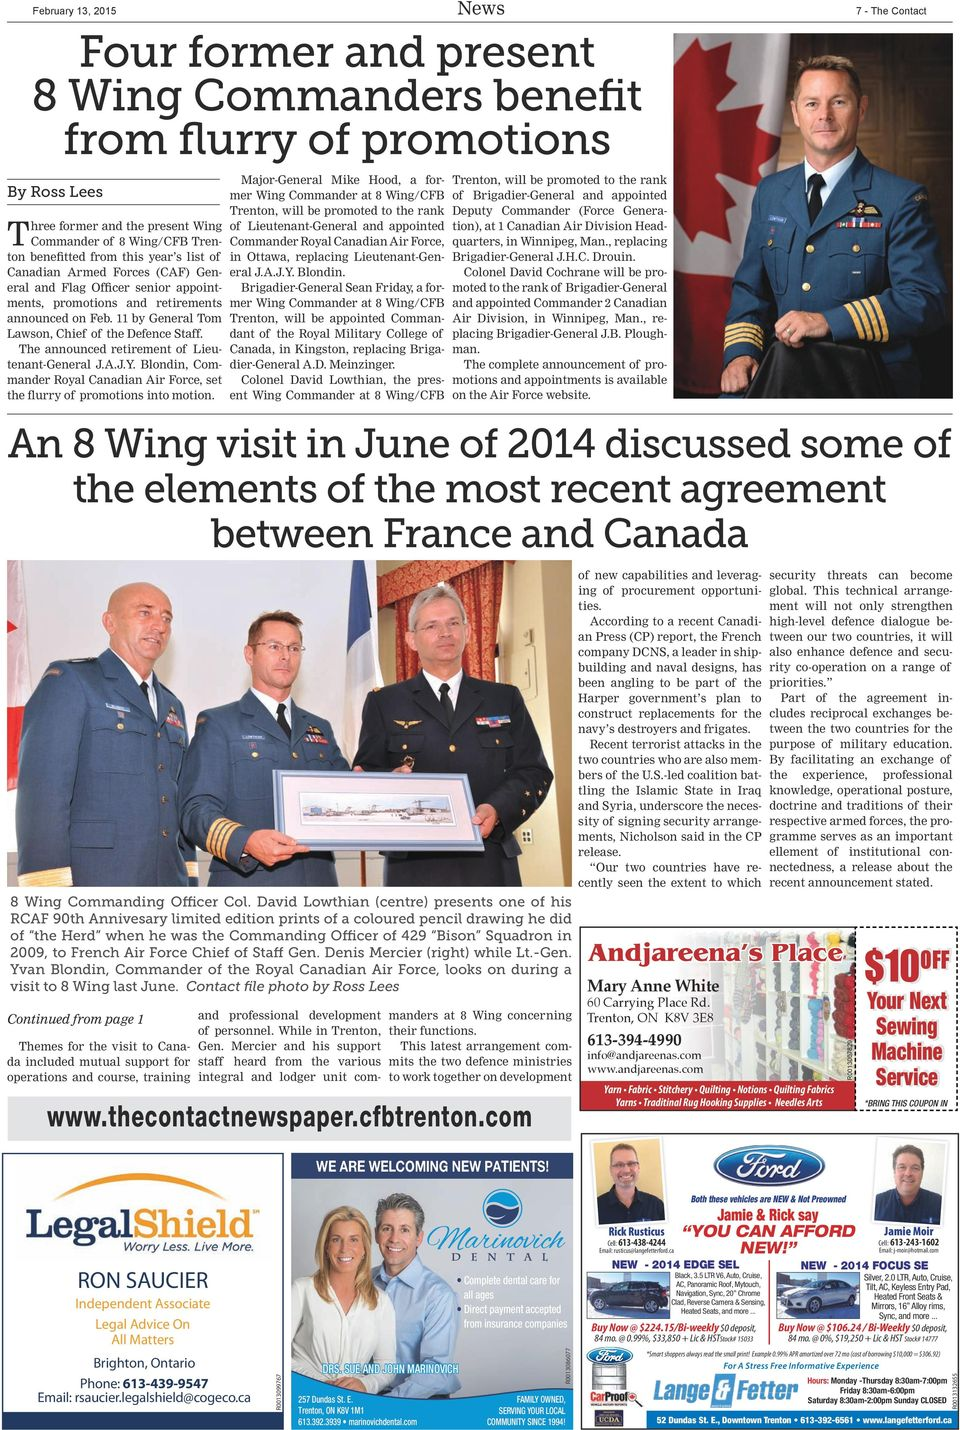 Blondin, Commander Royal Canadian Air Force, set the flurry of promotions into motion.